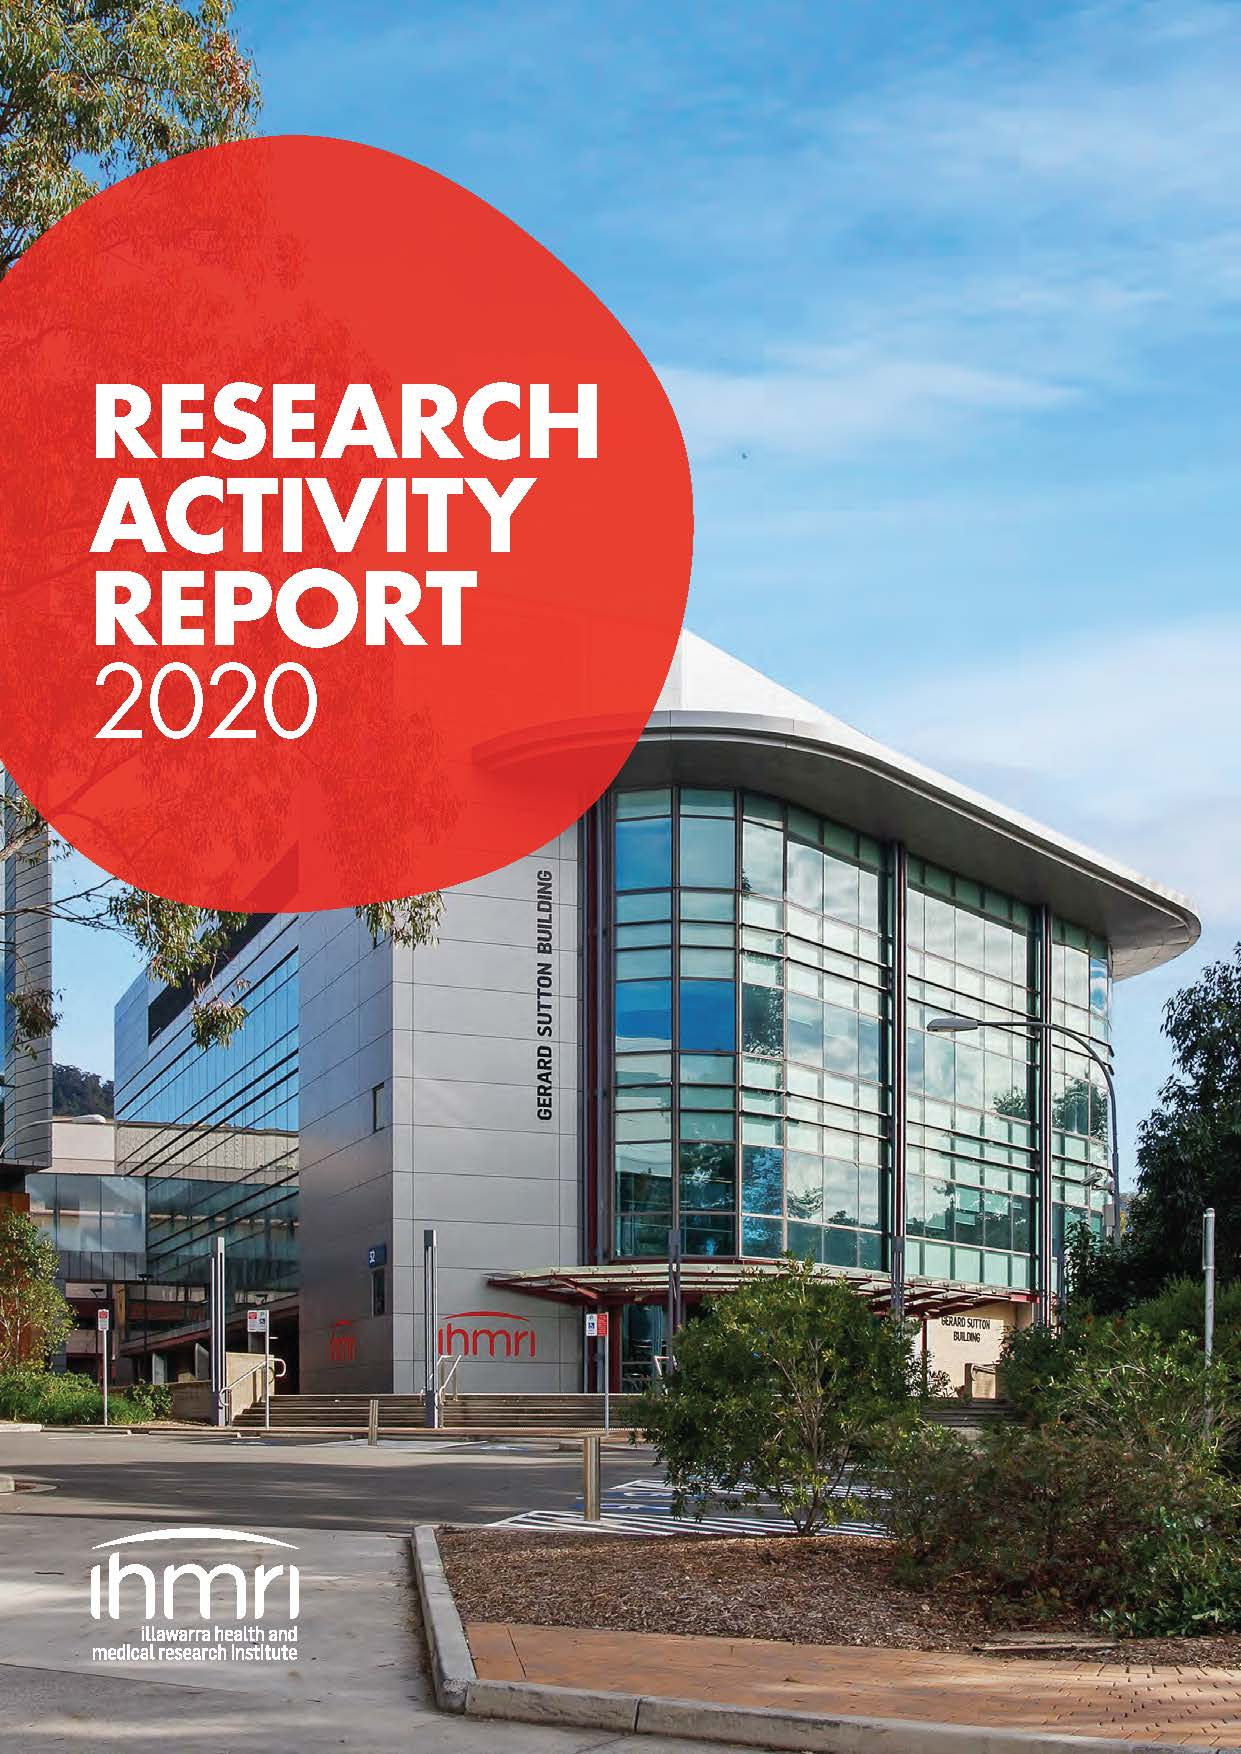 Research Activity Report 2020